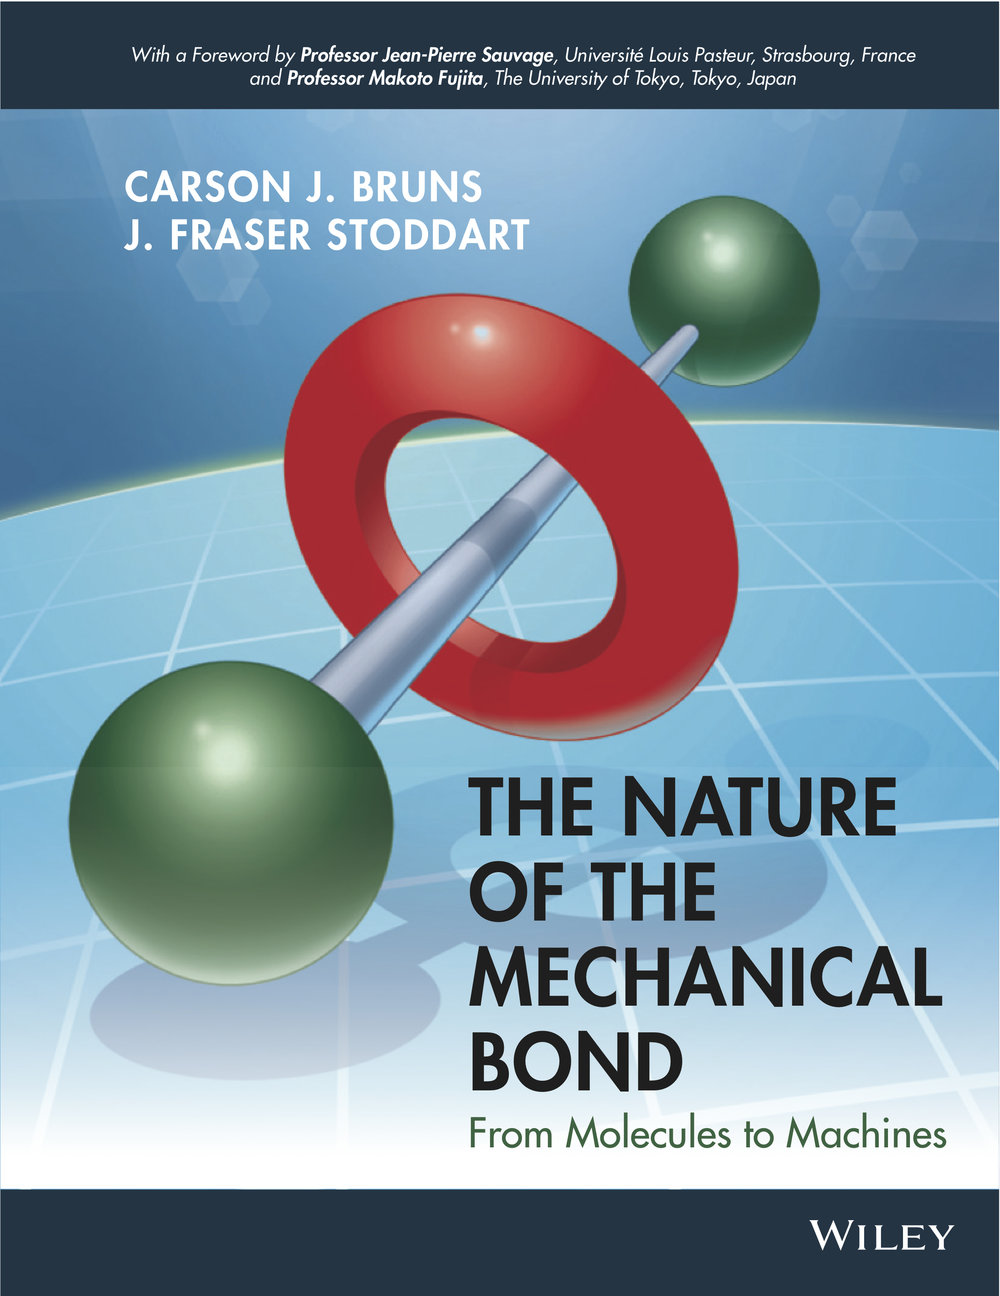 The Nature of the Mechanical Bond Cover Final copy copy.jpg